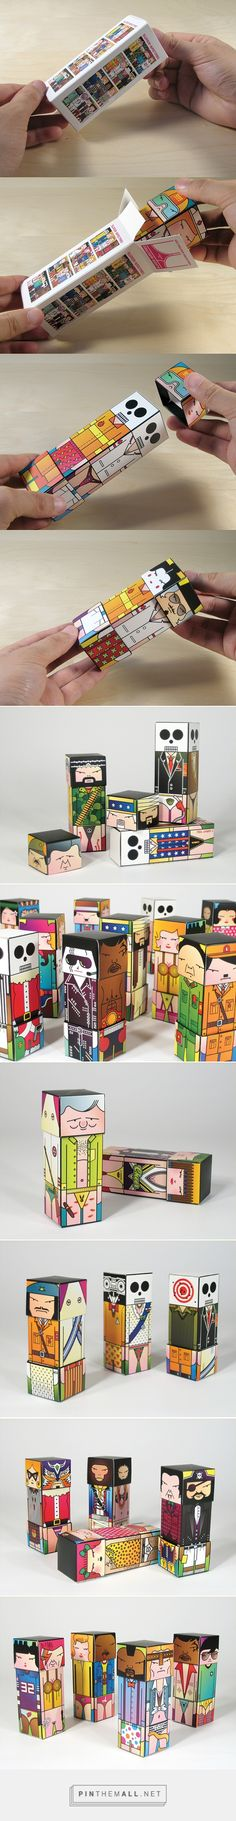 toy design Super-Bastard Box Art Characters on Behance via undoboy curated by Packaging Diva PD. Super-Bastard Box Art Characters designed, illustrated concept packaging for their first designer toy : ) Toy Packaging, Brand Packaging, Design Packaging, Graph Design, Diy Toy Storage, Designer Toys, Packaging Design Inspiration, Paper Toys, Box Art